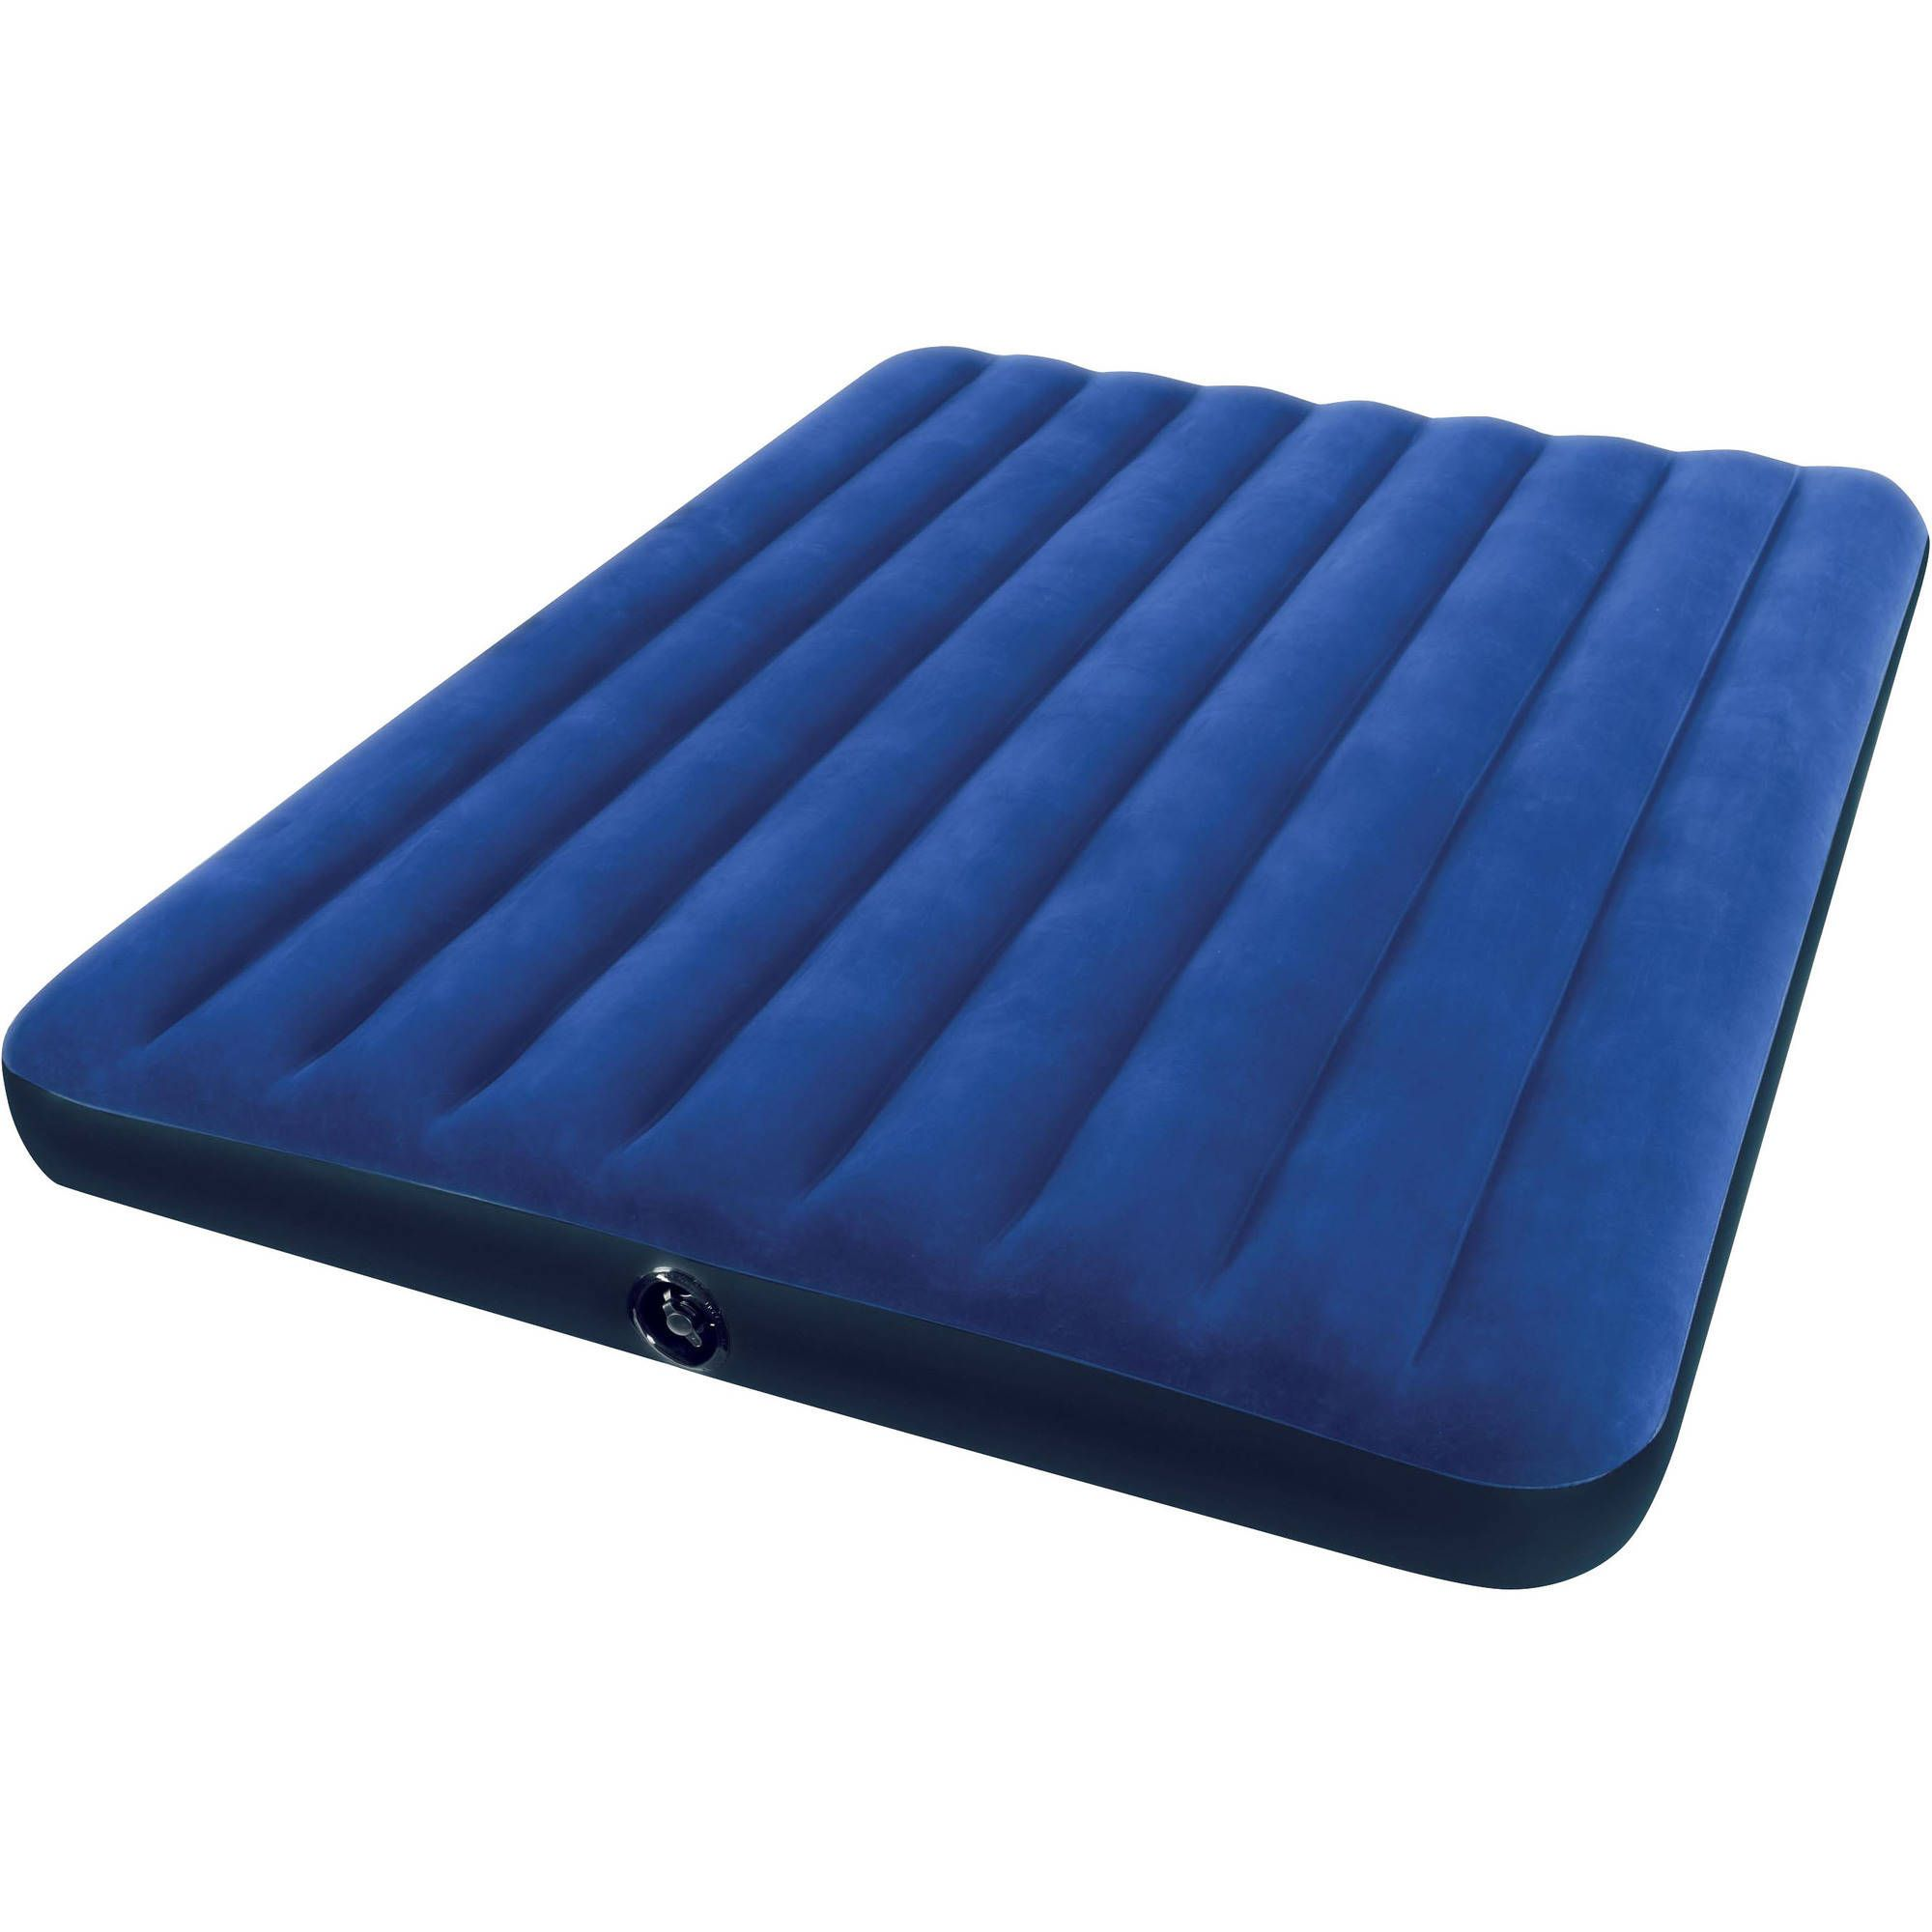 new double king mattress portable camping flocked beds bed single air itm inflatable